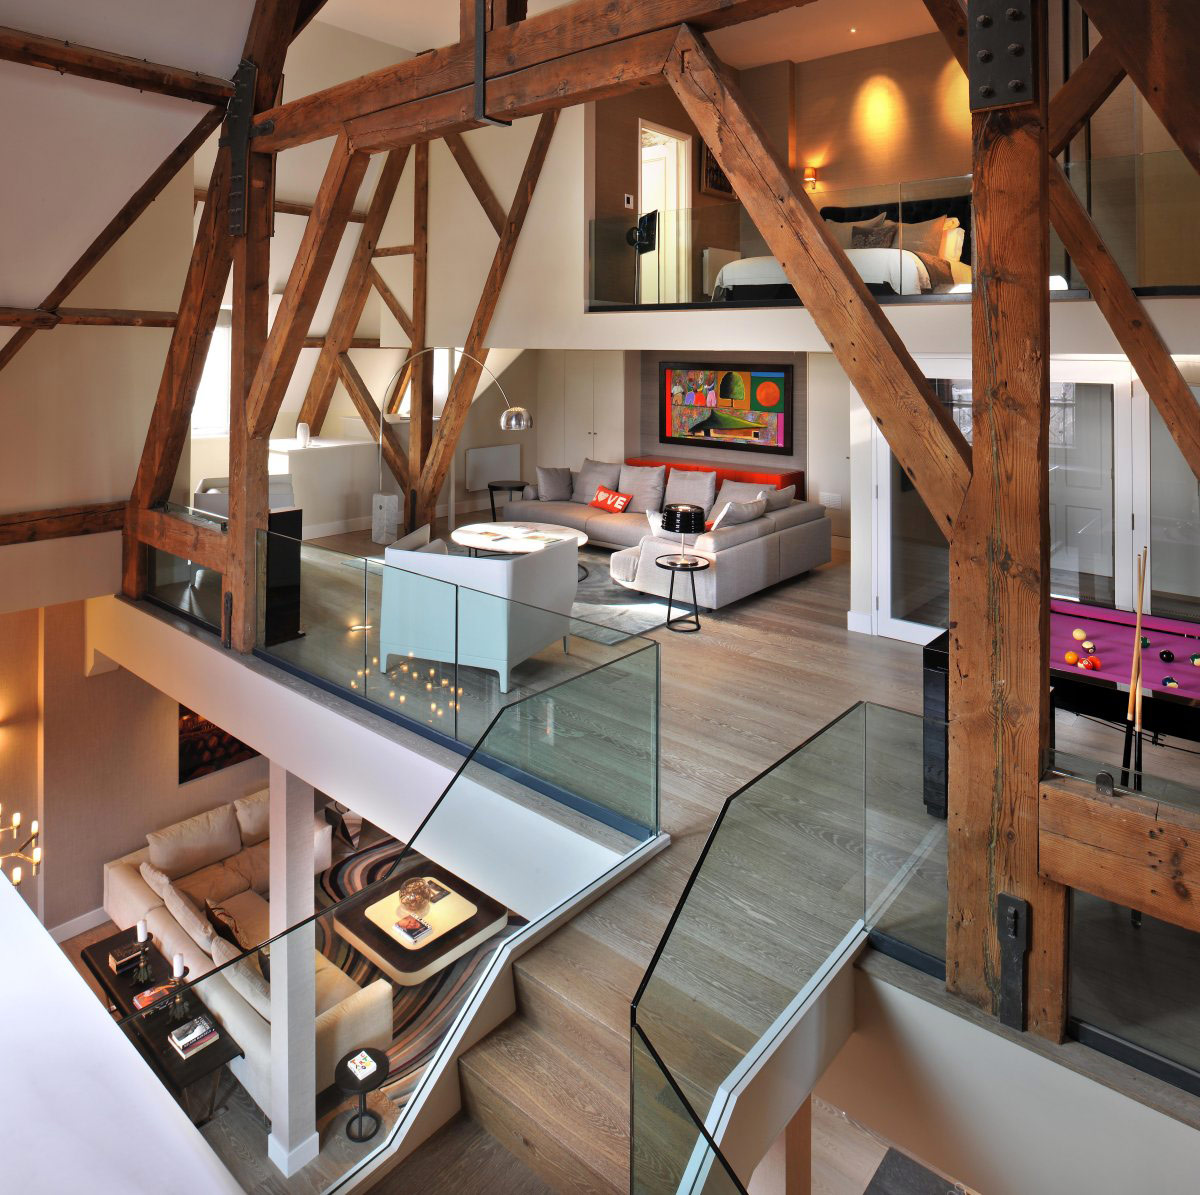 St Pancras Penthouse Apartment in London